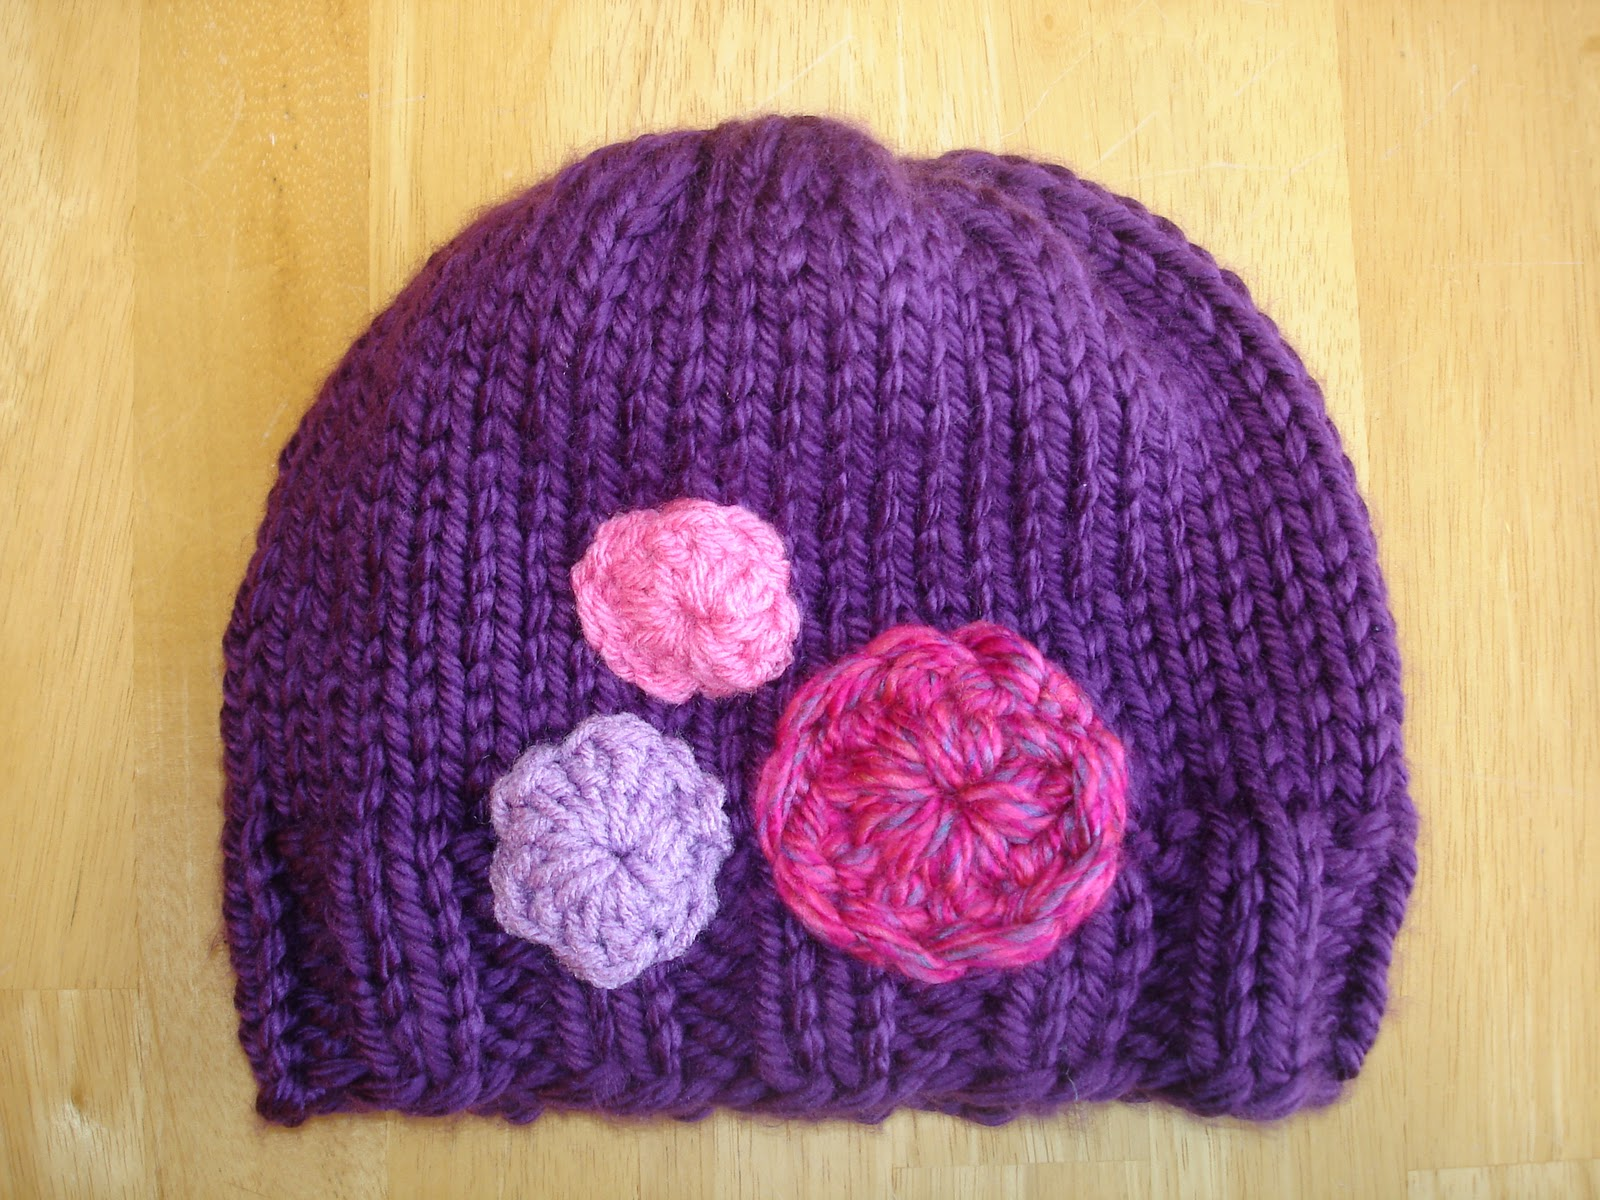 Knitting Hat Patterns : Fiber Flux: Free Knitting Pattern! Her Royal Highness Hat...